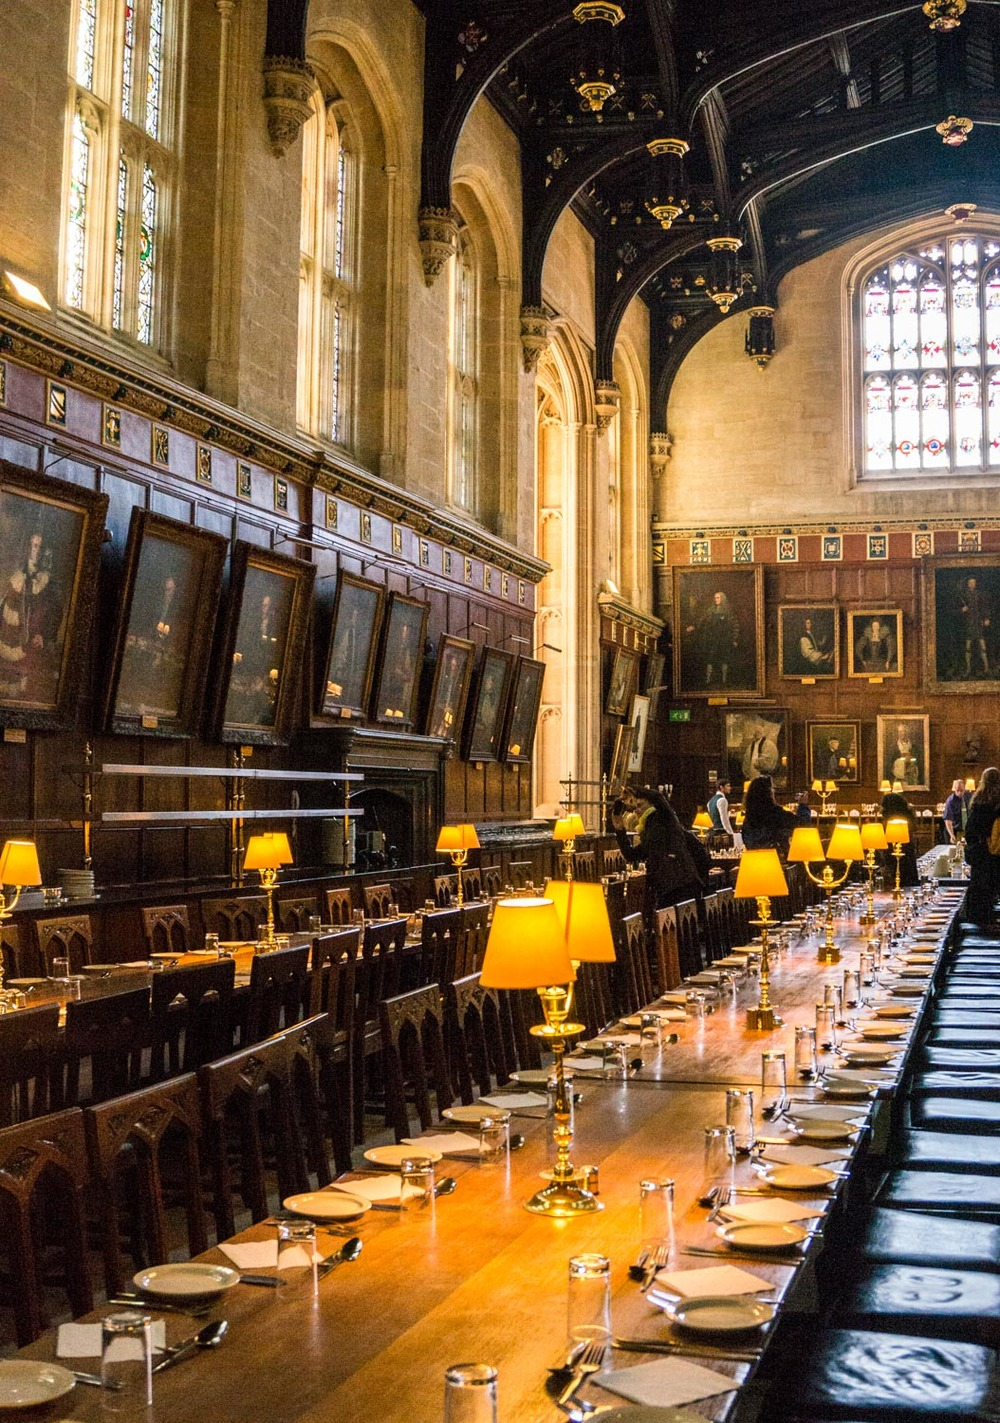 The Great Hall in Christ Church College, the inspiration for the Great Hall in Harry Potter